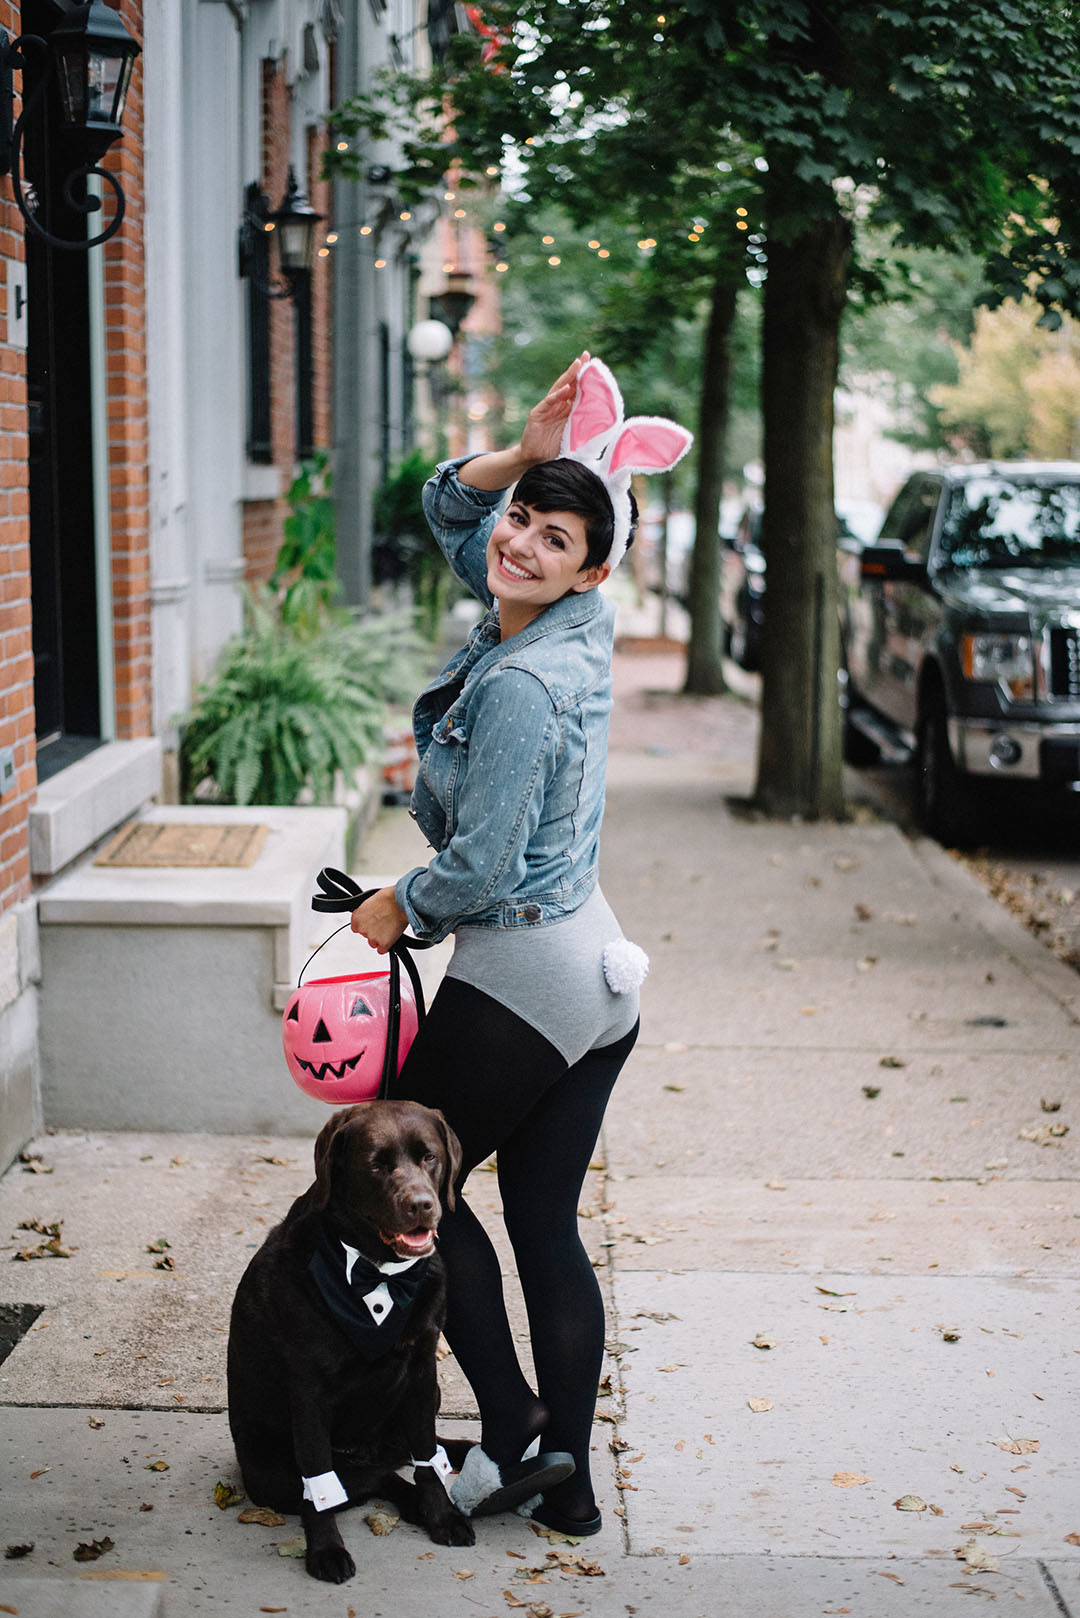 Halloween Couples Costume With Your Dog: Magician and Rabbit